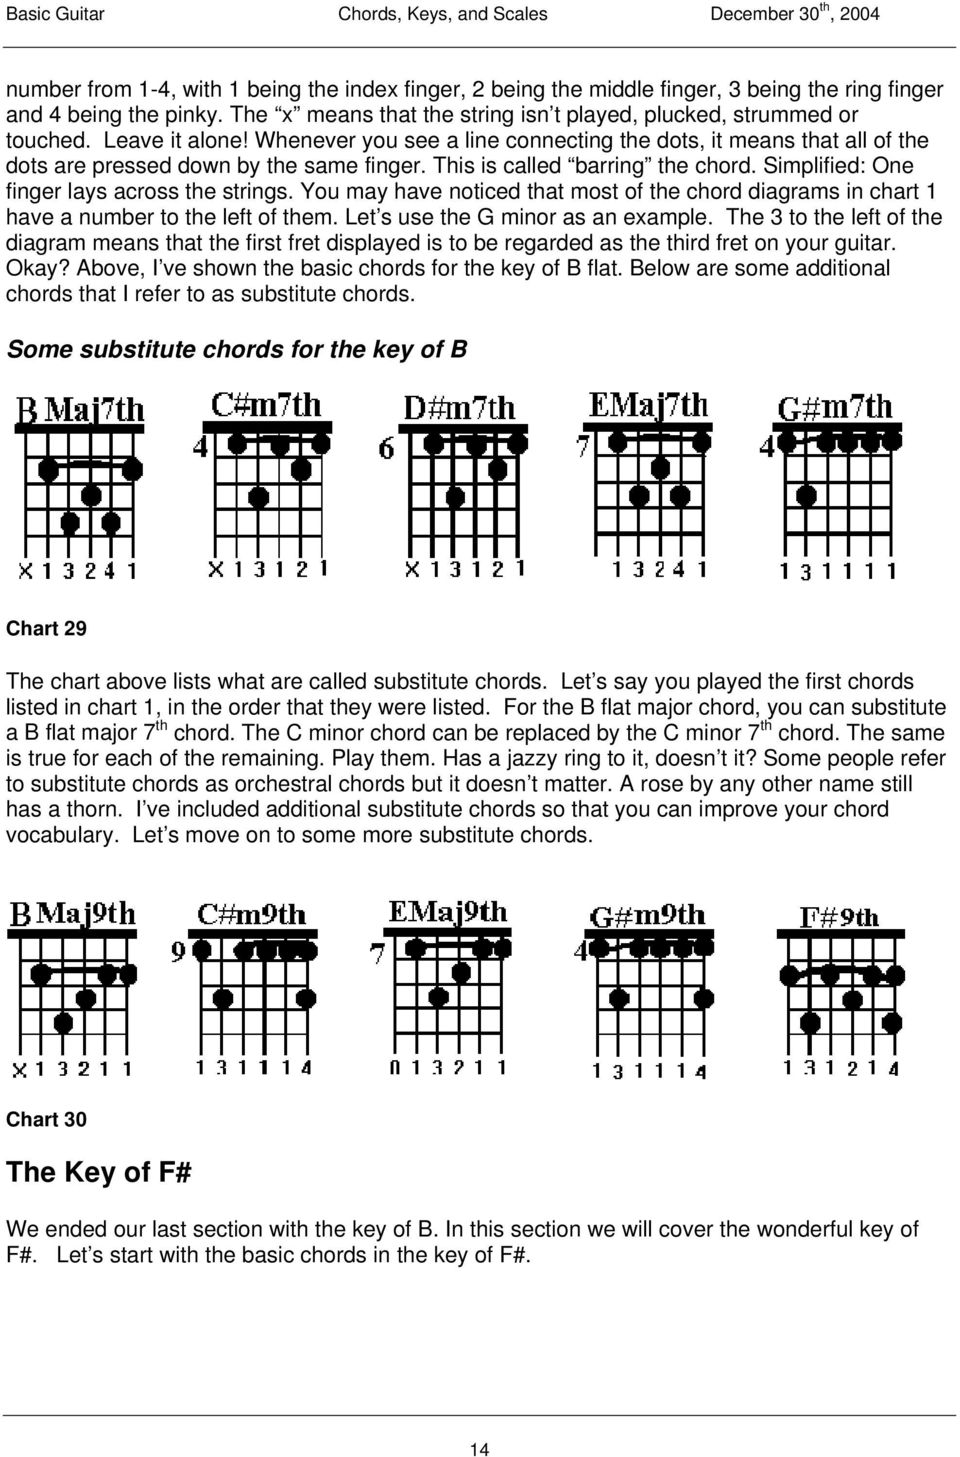 Guitar Basics Of Chords Keys And Scales Pdf